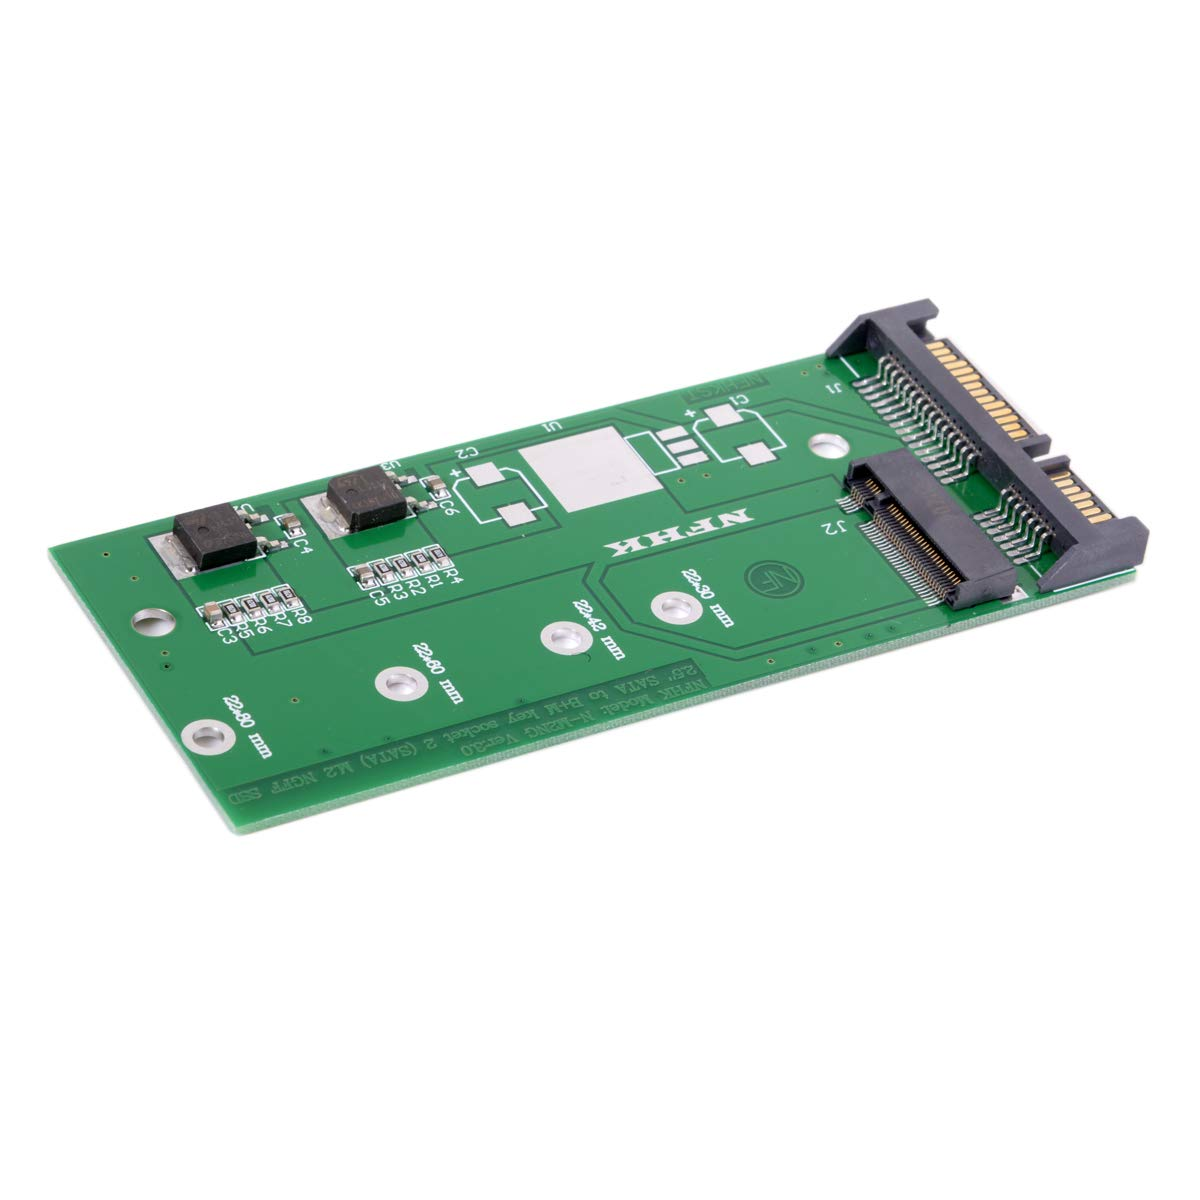 cablecc M.2 NGFF PCI-E 2 Lane SSD a 7 mm 2,5 SATA 22pin Disco Duro ...